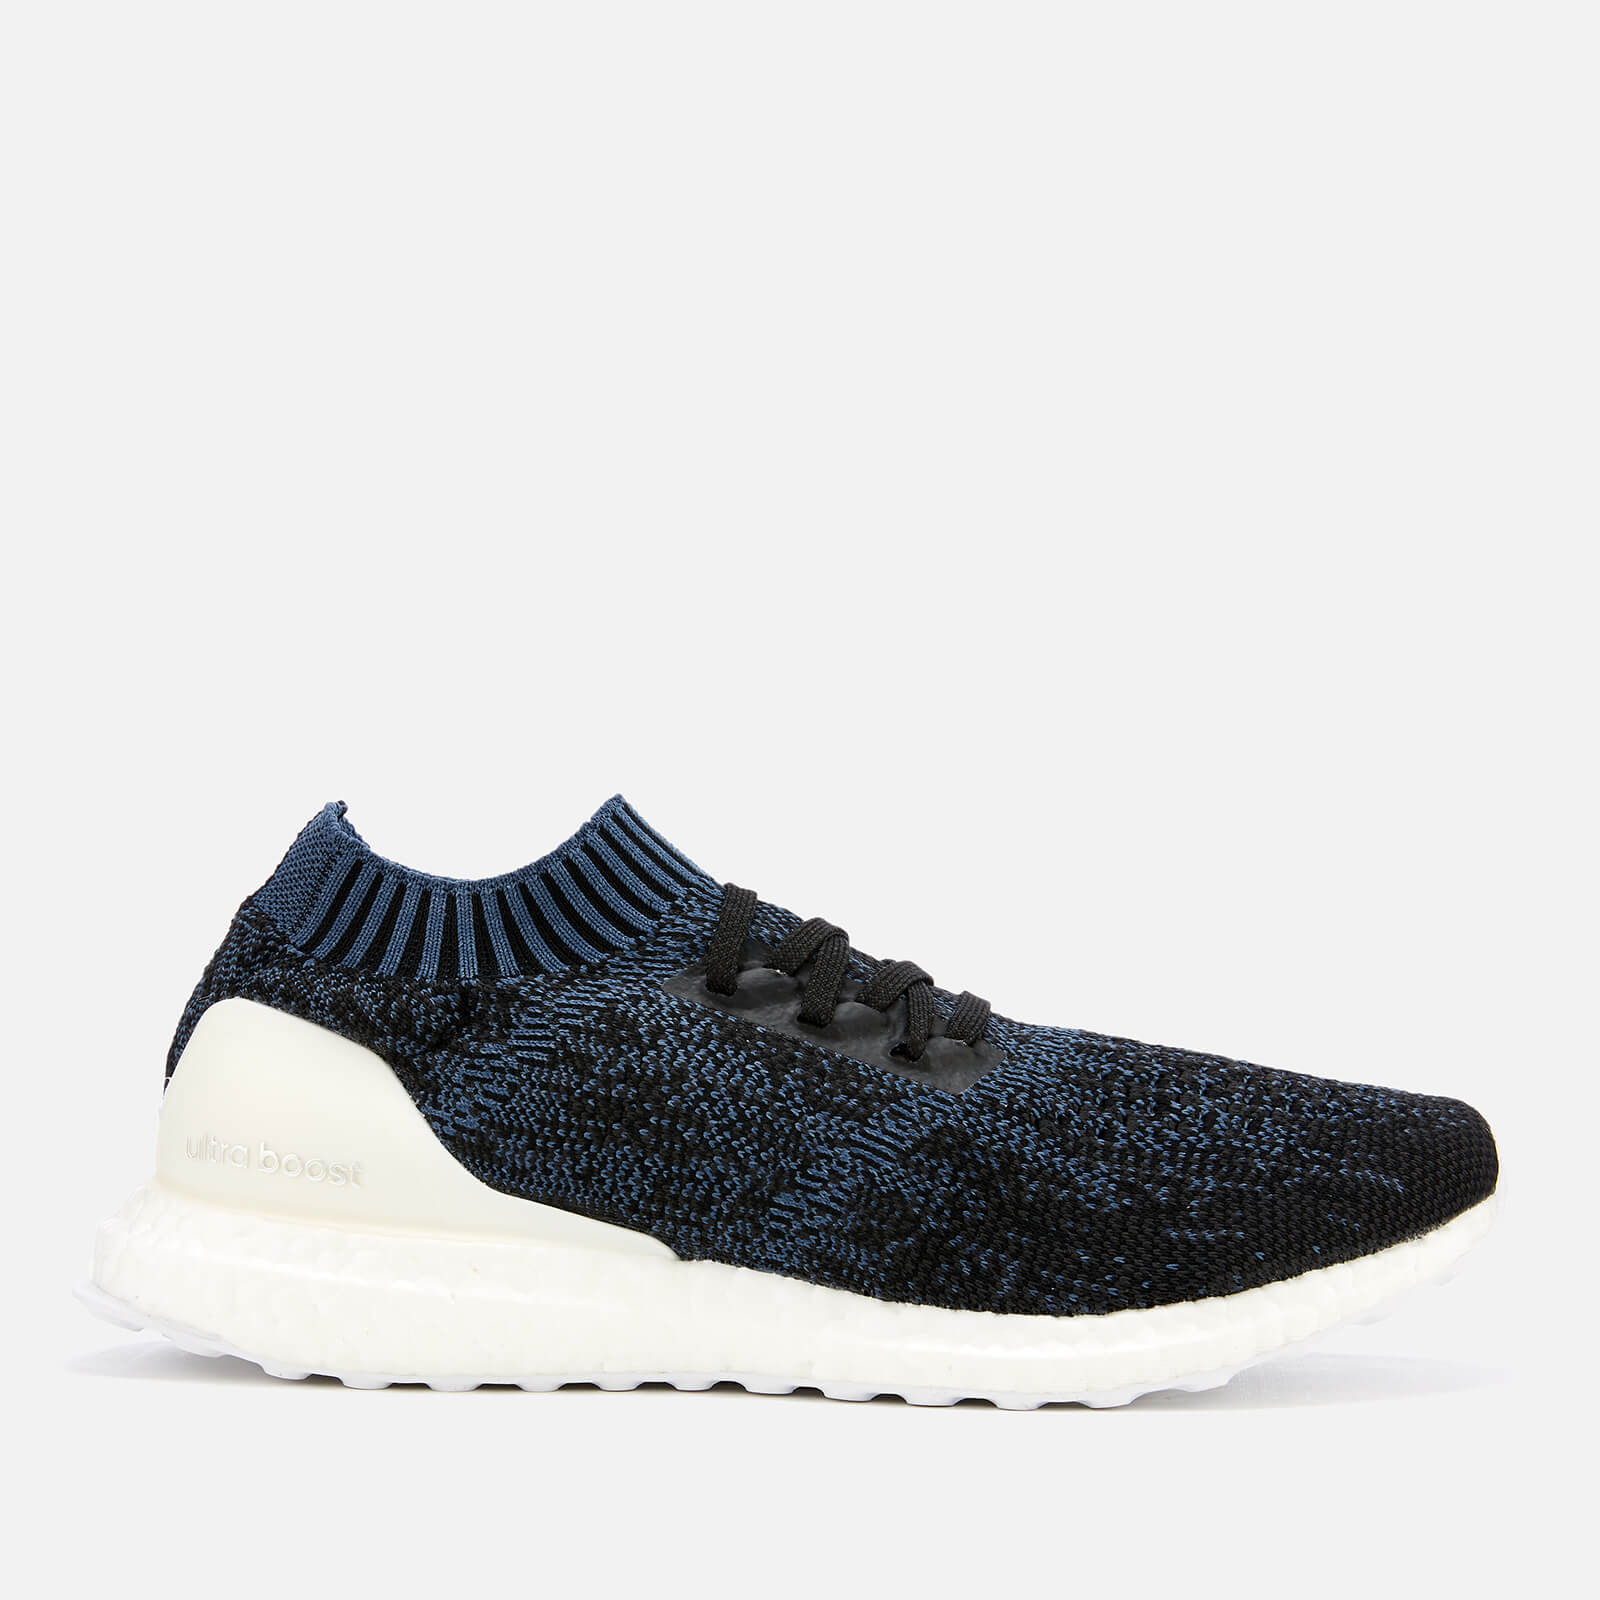 52fbc8ab33d adidas Men s Ultraboost Uncaged Trainers - Tec Ink Sports   Leisure ...